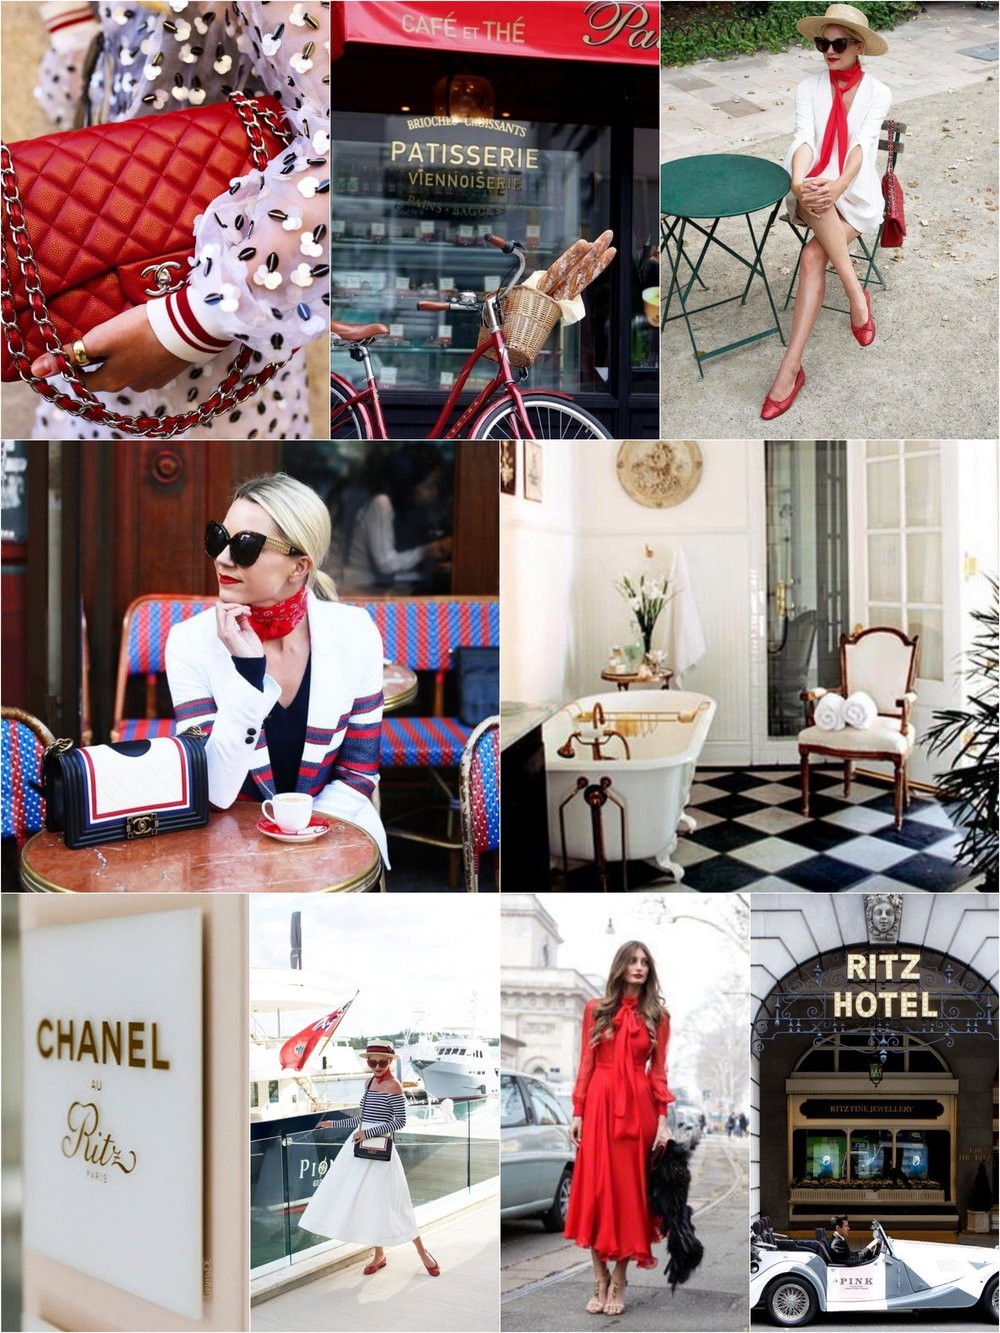 Photos (clockwise from upper left):  Atlantic Pacific  |  Fleaing France  |  Atlantic Pacific  |  House Beautiful  |  Five Star Alliance  |  Chloe Rose Boutique  |  Atlantic Pacific  |  German Vogue  |  Atlantic Pacific  | 2016.